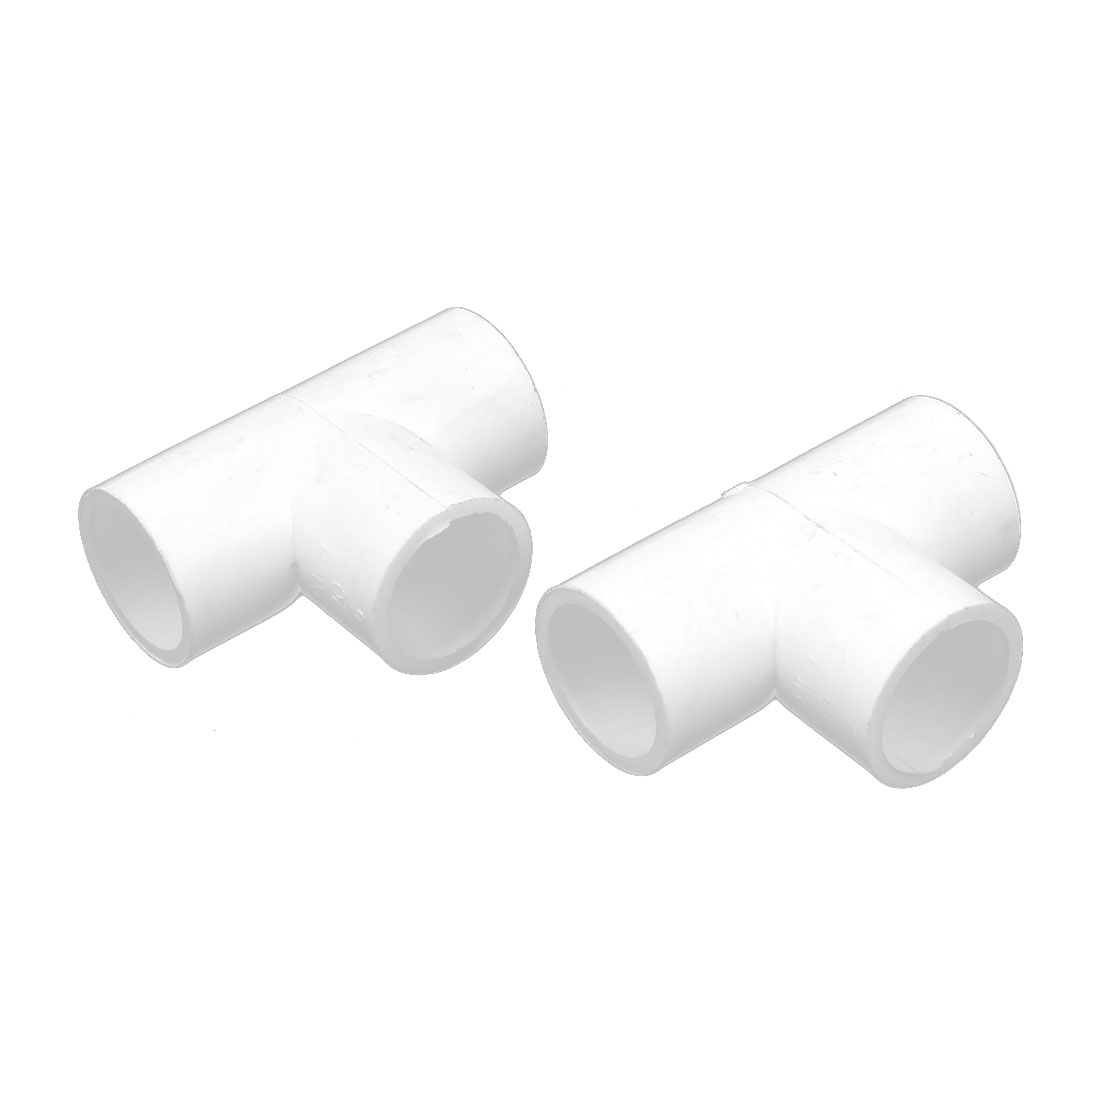 20mm Inner Dia 3 Way T Shaped PVC Water Pipe Tube Joint Coupler Connector 2pcs